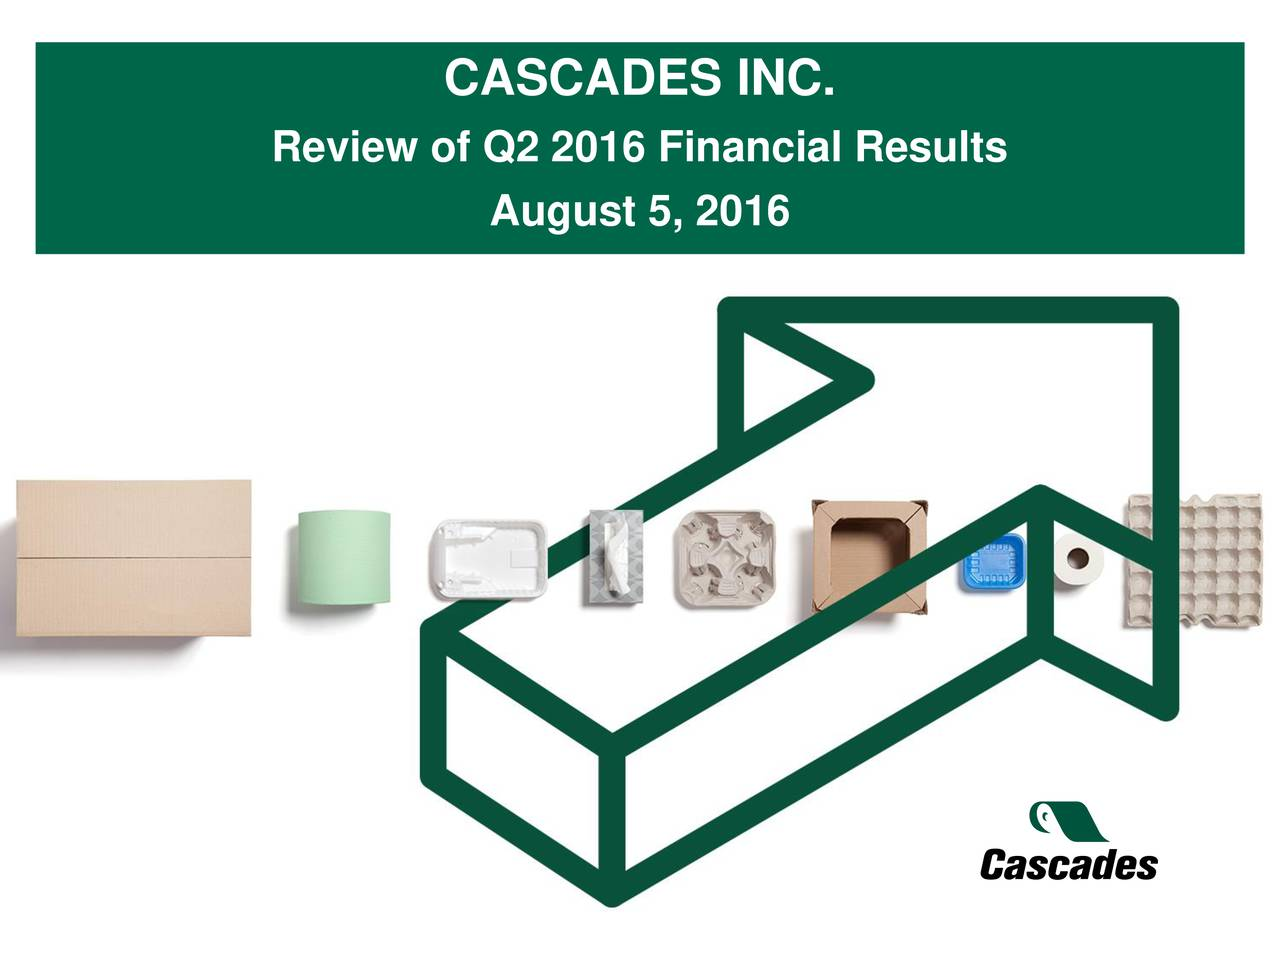 Review of Q2 2016 Financial Results August 5, 2016